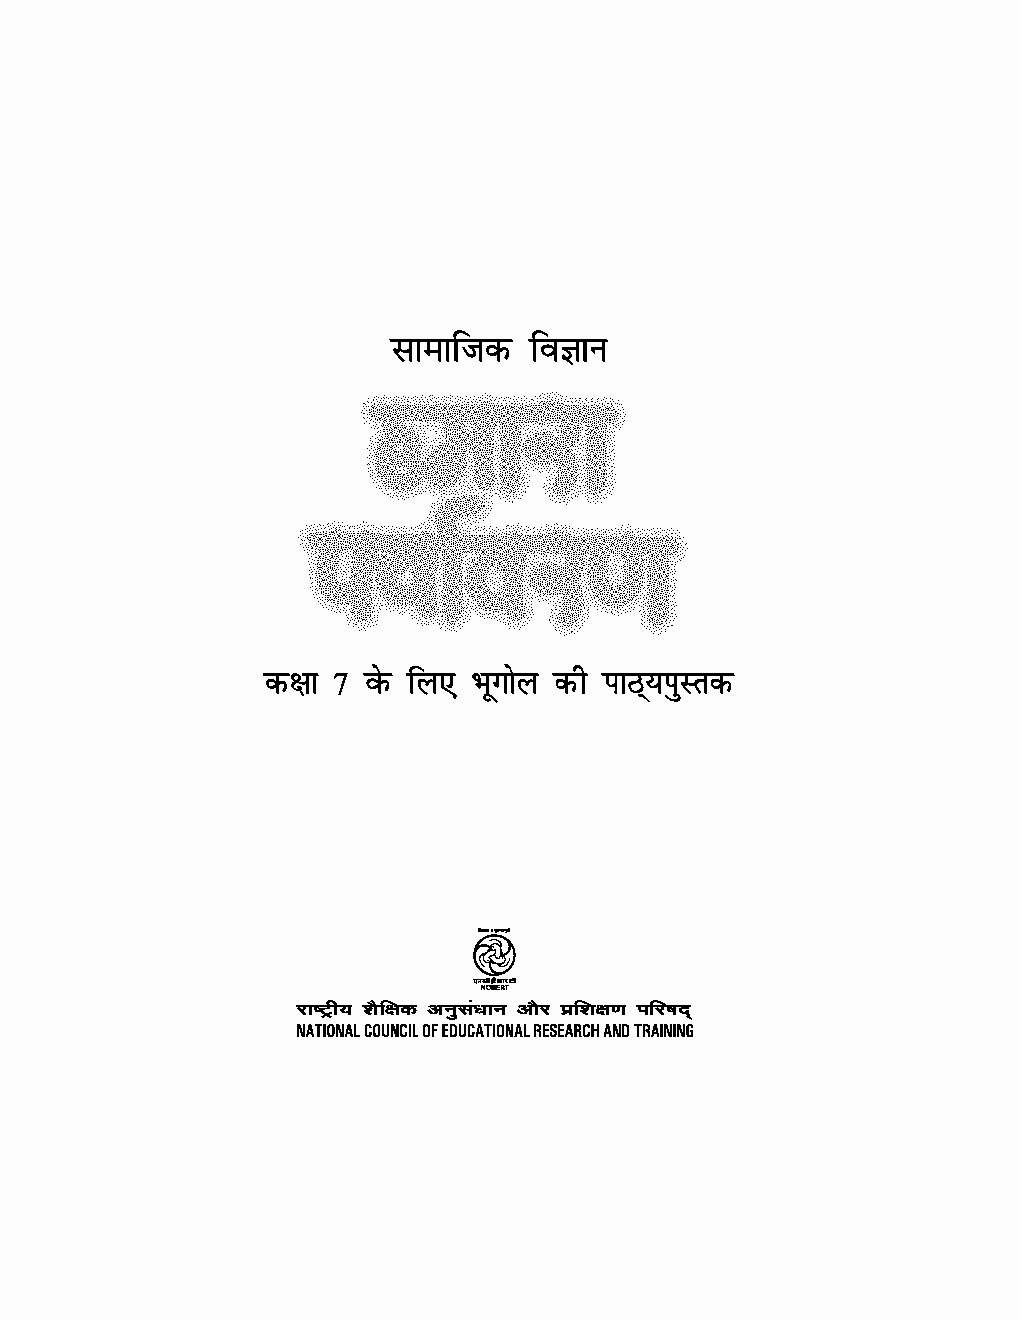 Ncert Books In Hindi Pdf File